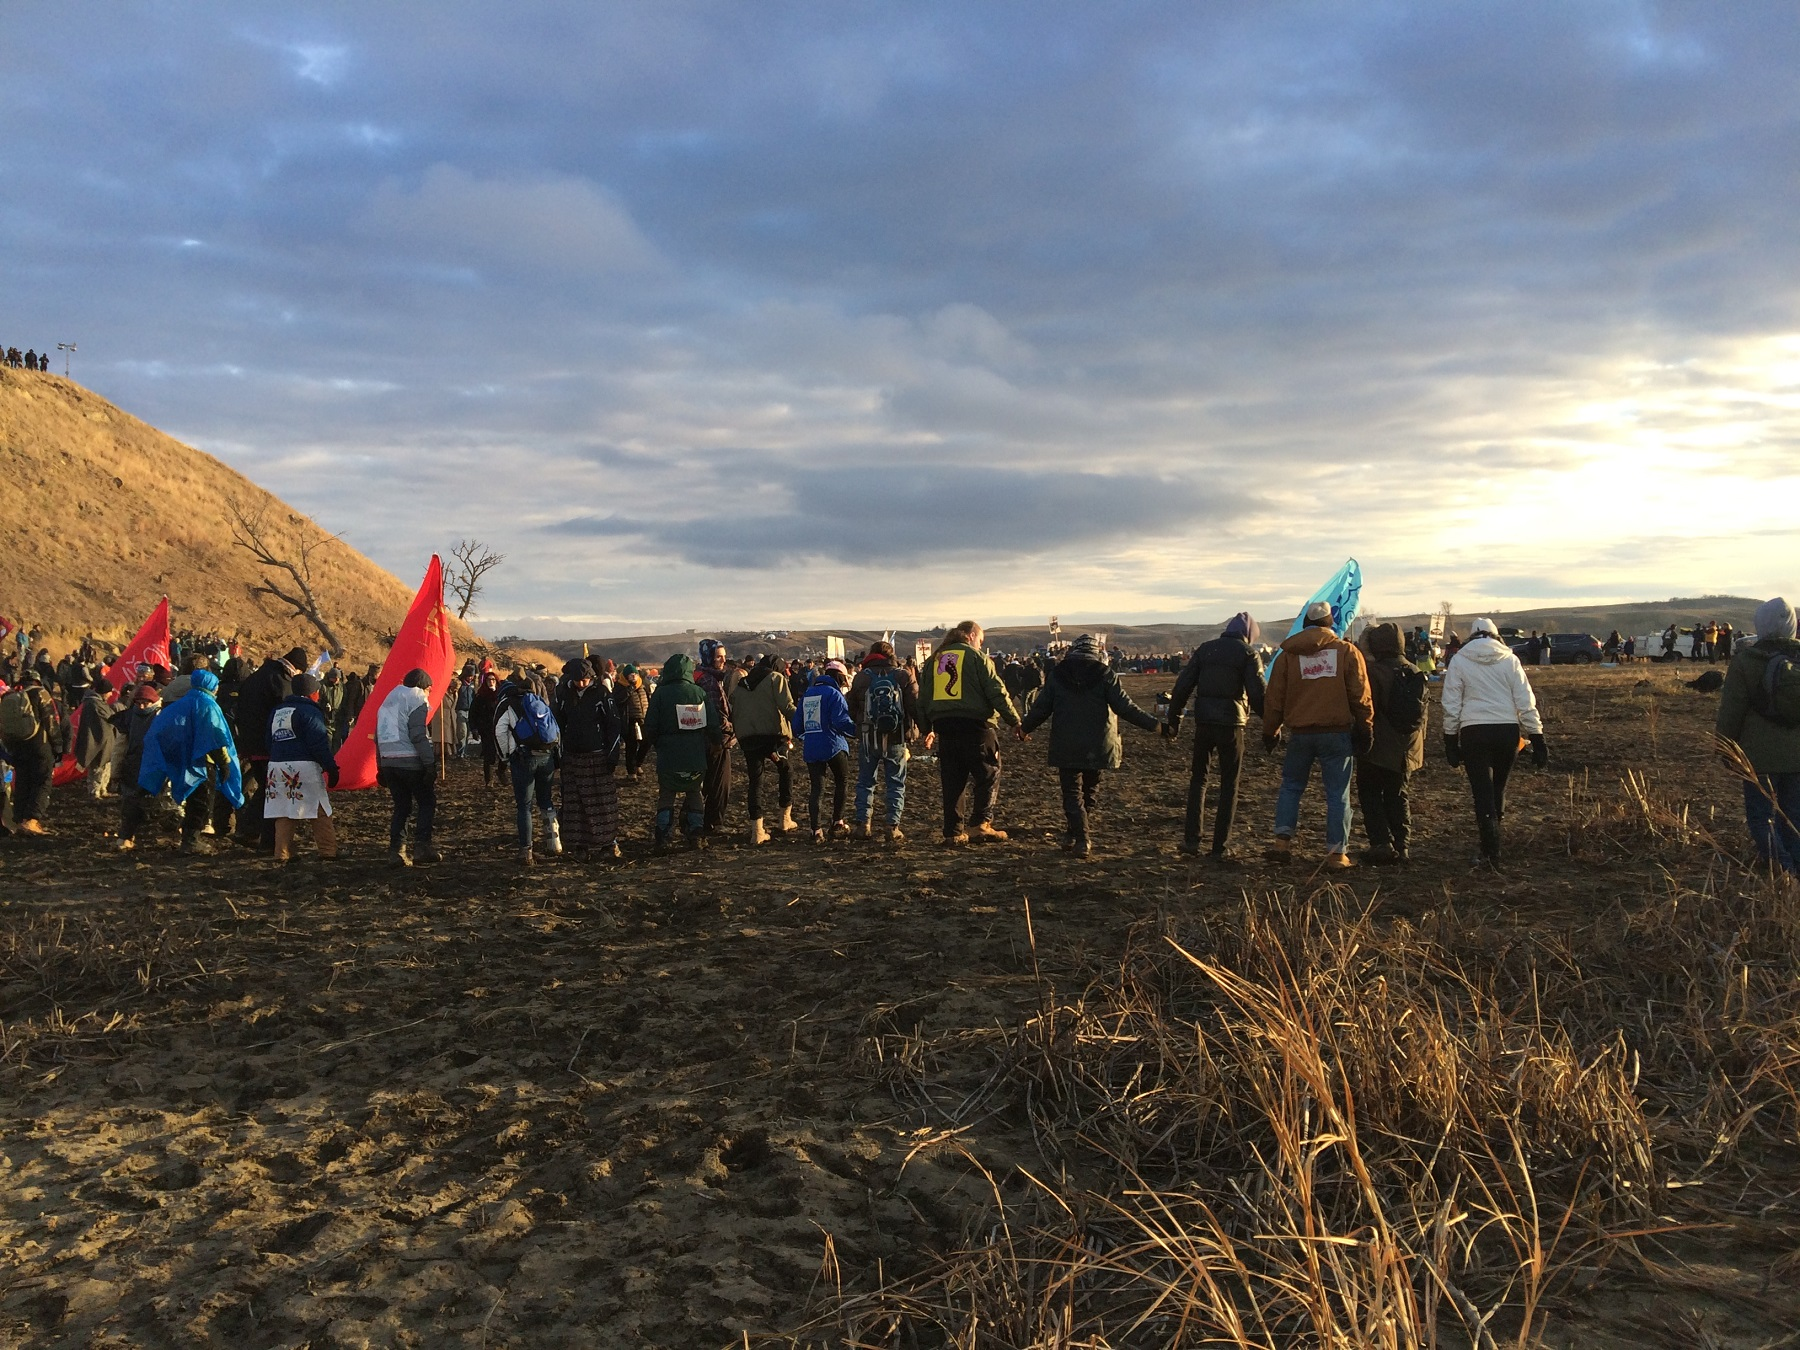 Halting DAPL Should Be Just the First Step in Full Consultation of Indigenous Voices